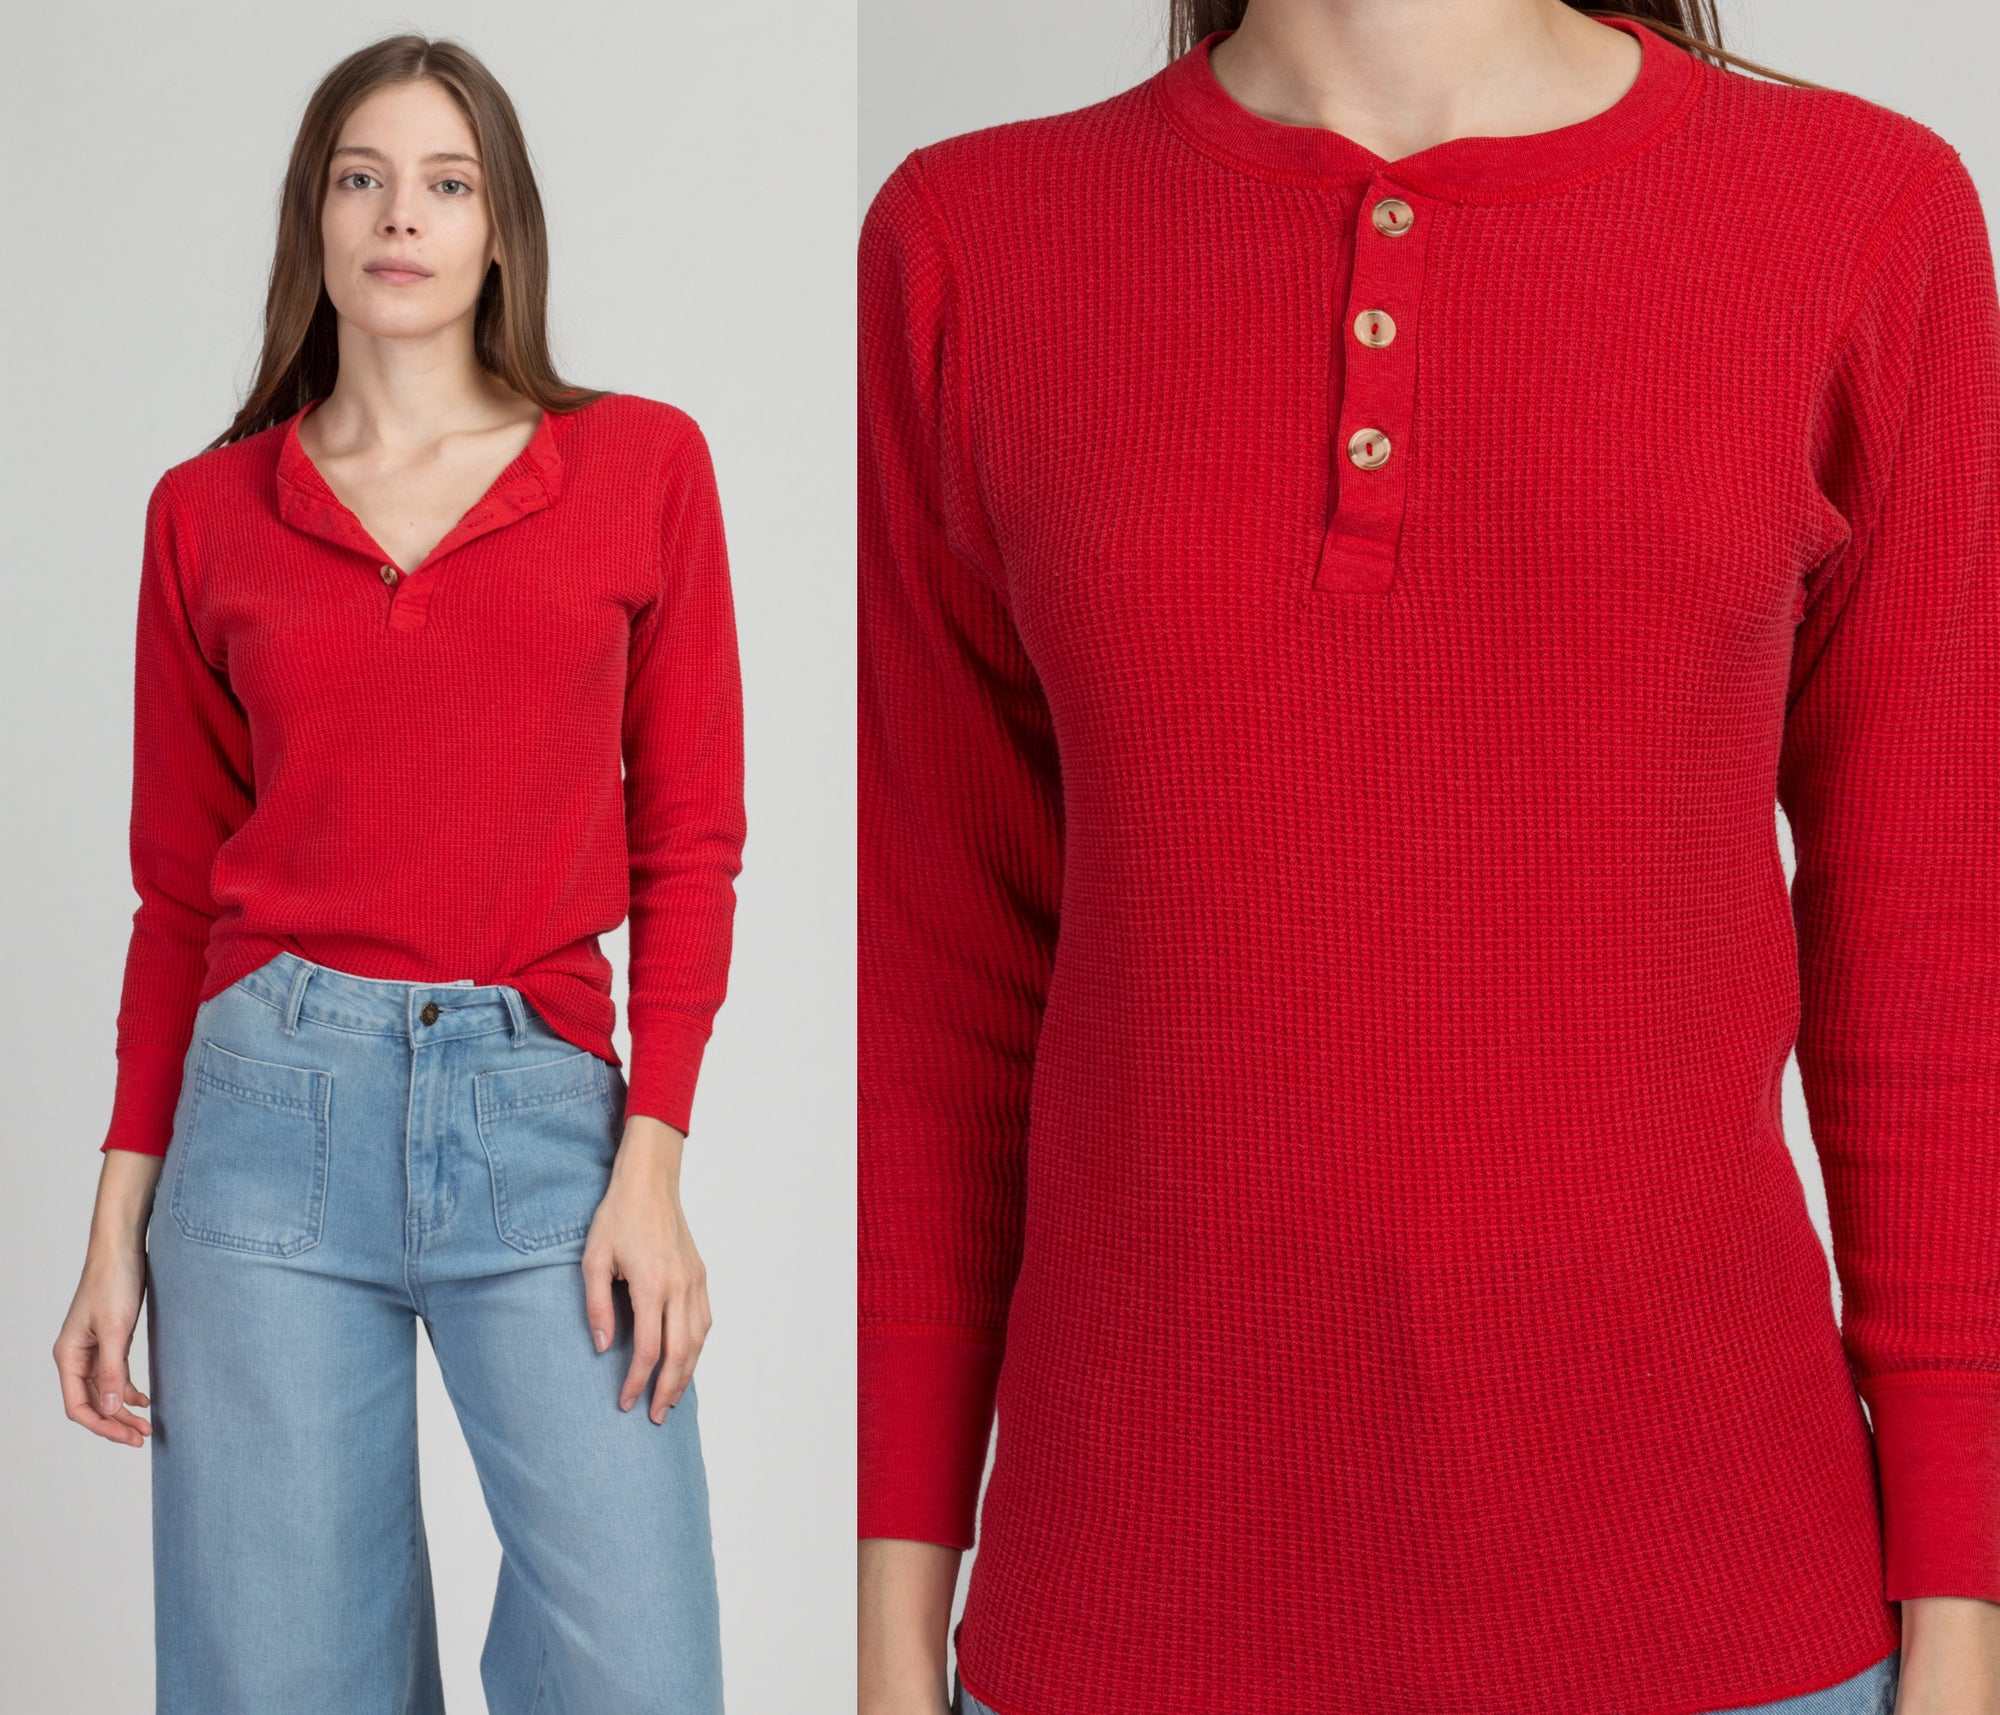 80s Red Waffle Knit Henley Shirt - Men's Small Short, Women's Medium | Vintage Plain Long Sleeve Thermal Top